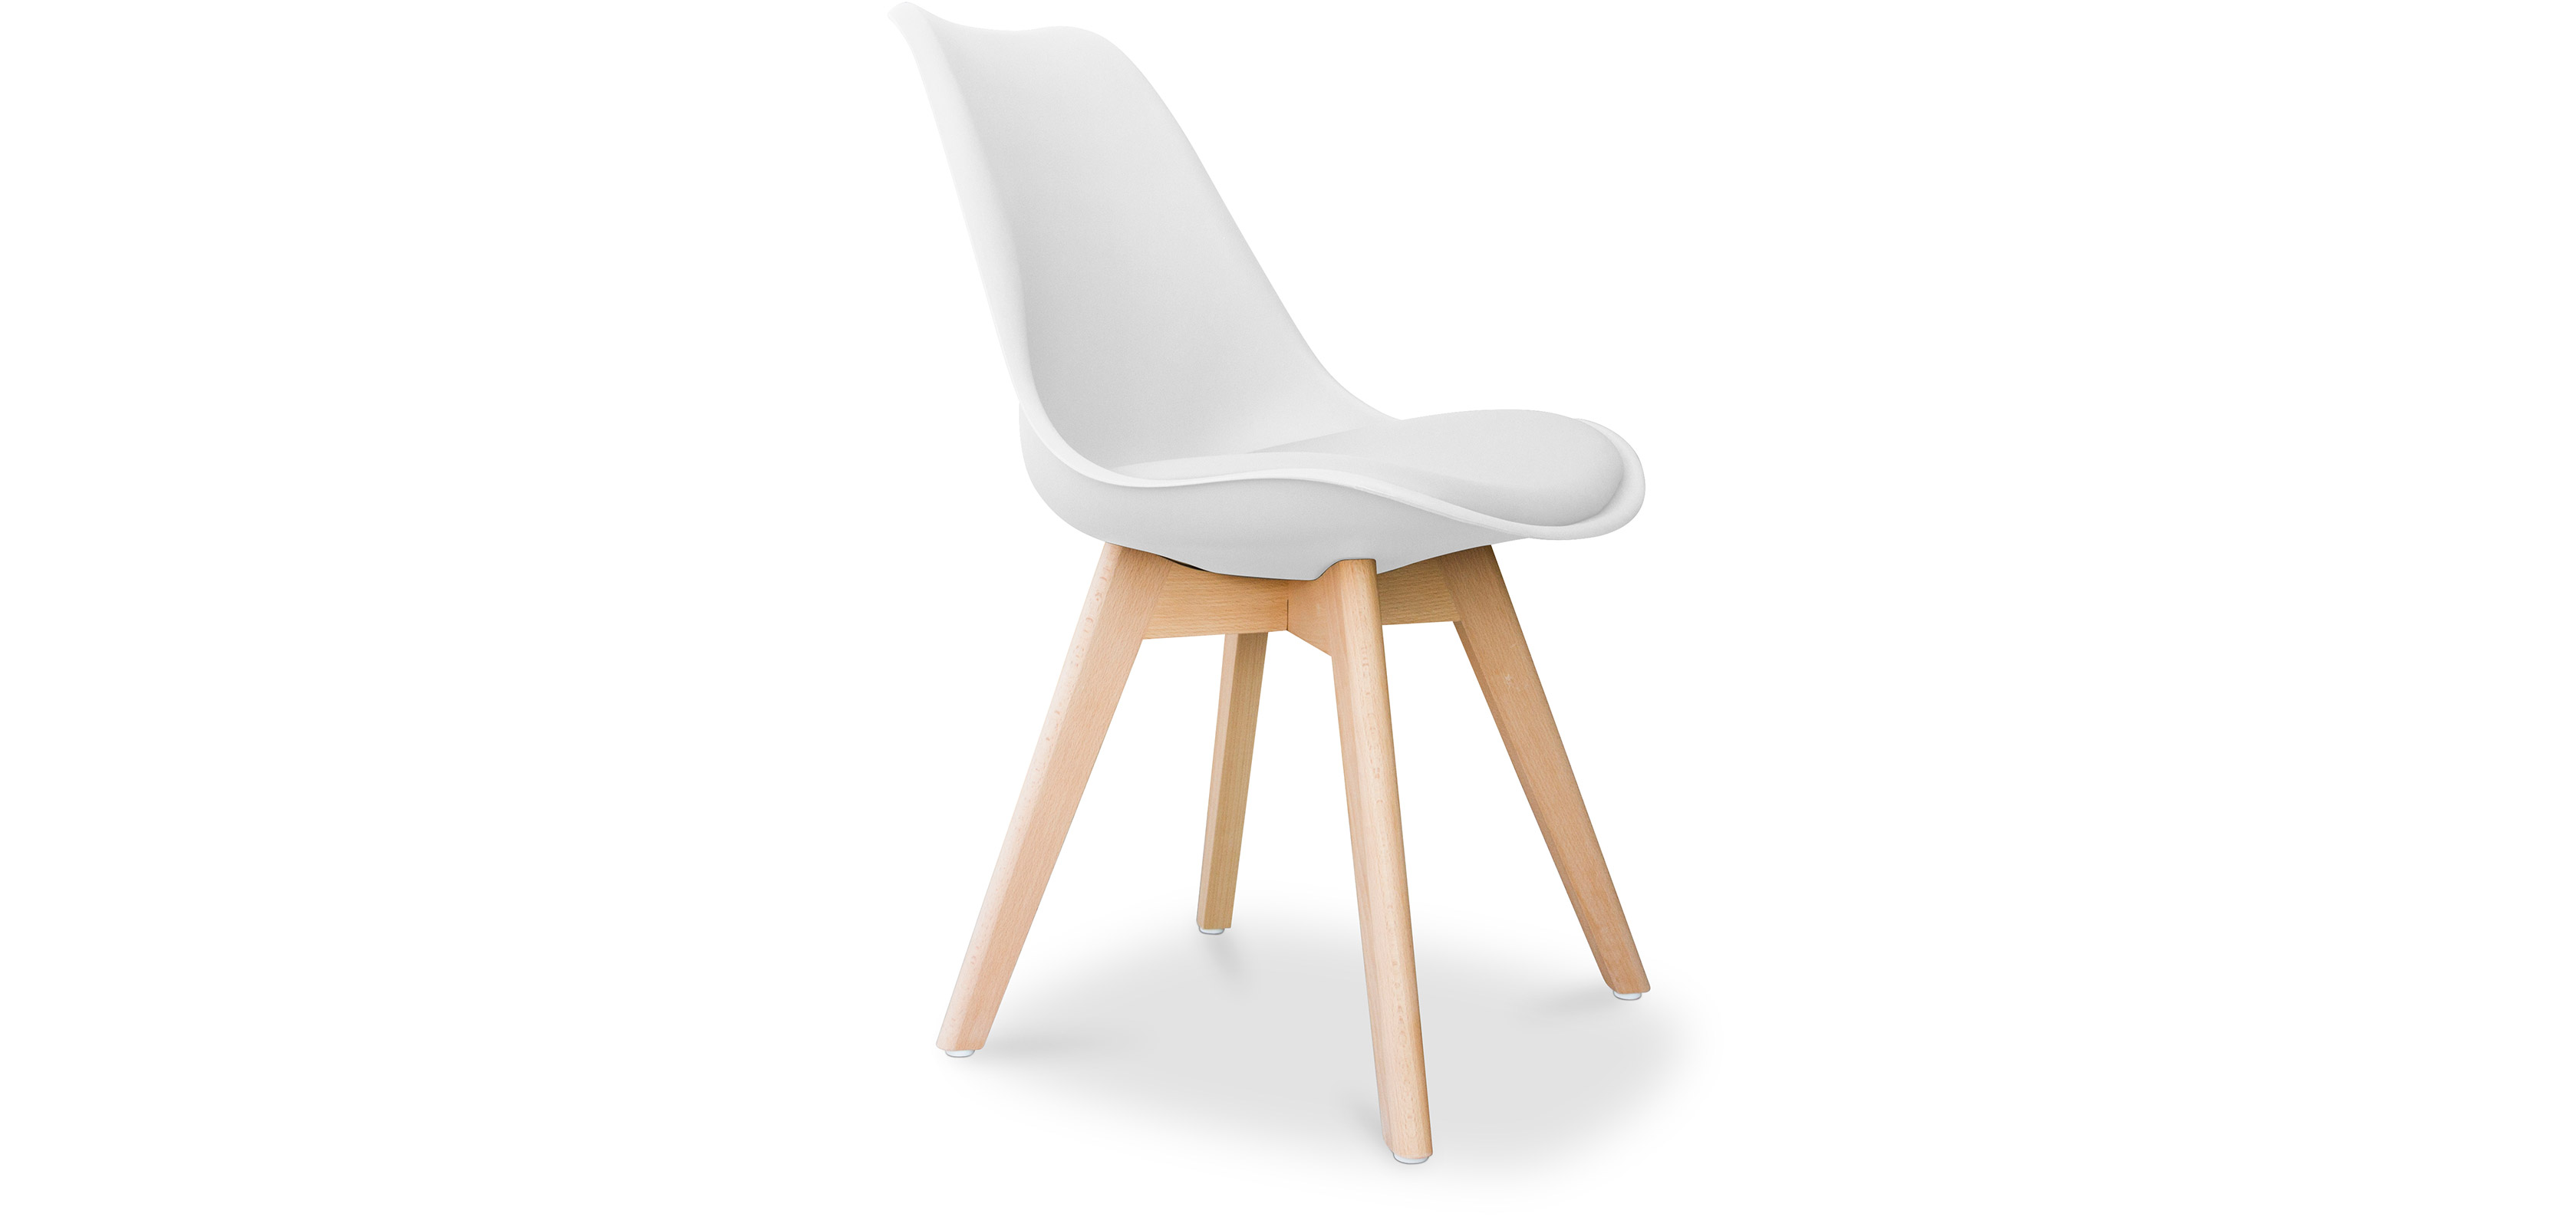 DSW Scandinavian Design Chair With Cushion Charles Eames